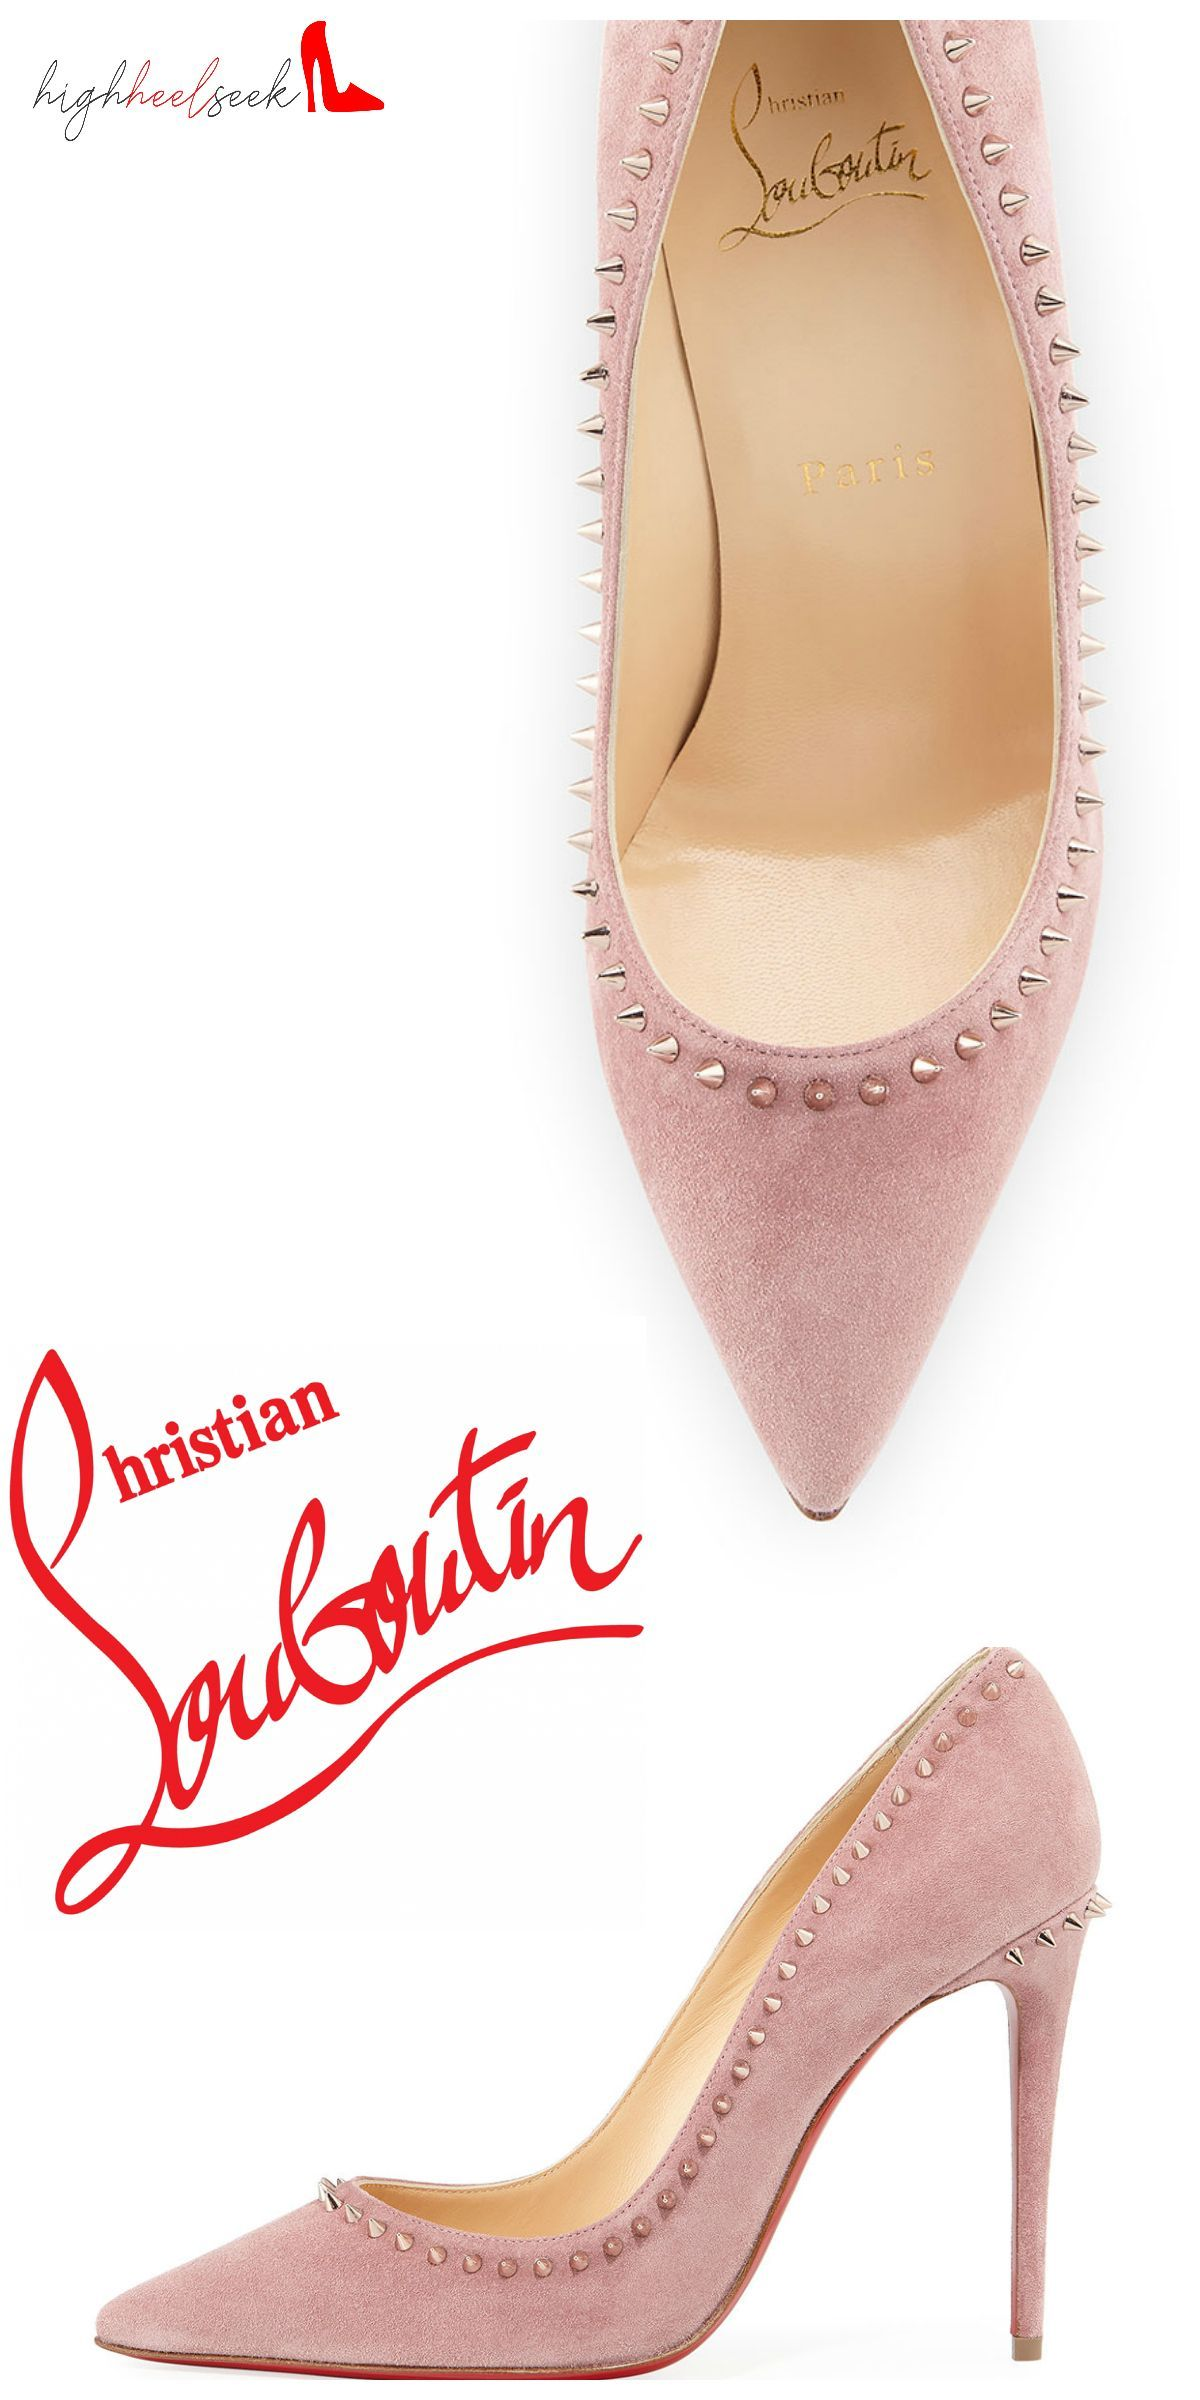 ad5d53c5c860 These Anjalina Spiked Suede Red Sole Pumps by Christian Louboutin are  simply amazing!  ChristianLouboutin